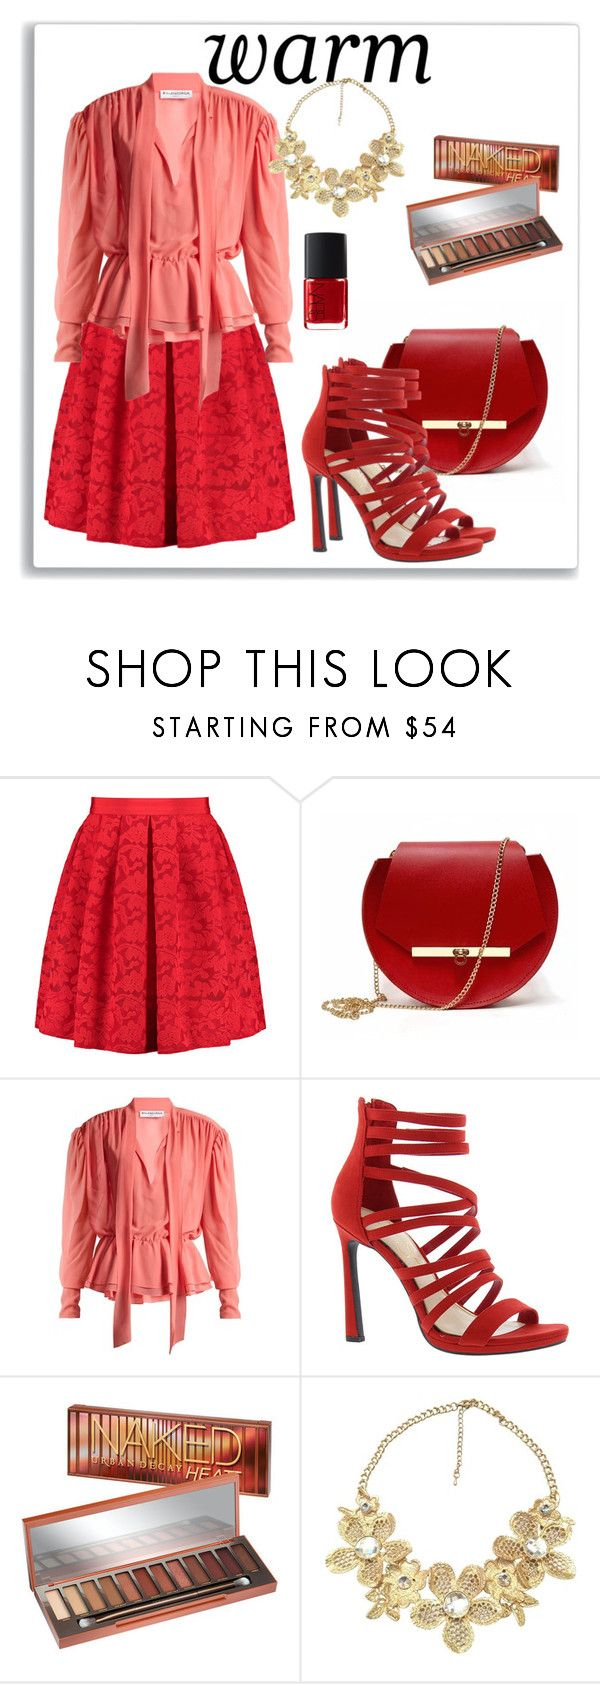 """""""warm summer outfit"""" by ornella-basso ❤ liked on Polyvore featuring Sandro, Angela Valentine Handbags, Balenciaga, Jessica Simpson, Urban Decay, Valentino, NARS Cosmetics, Summer, outfit and red"""